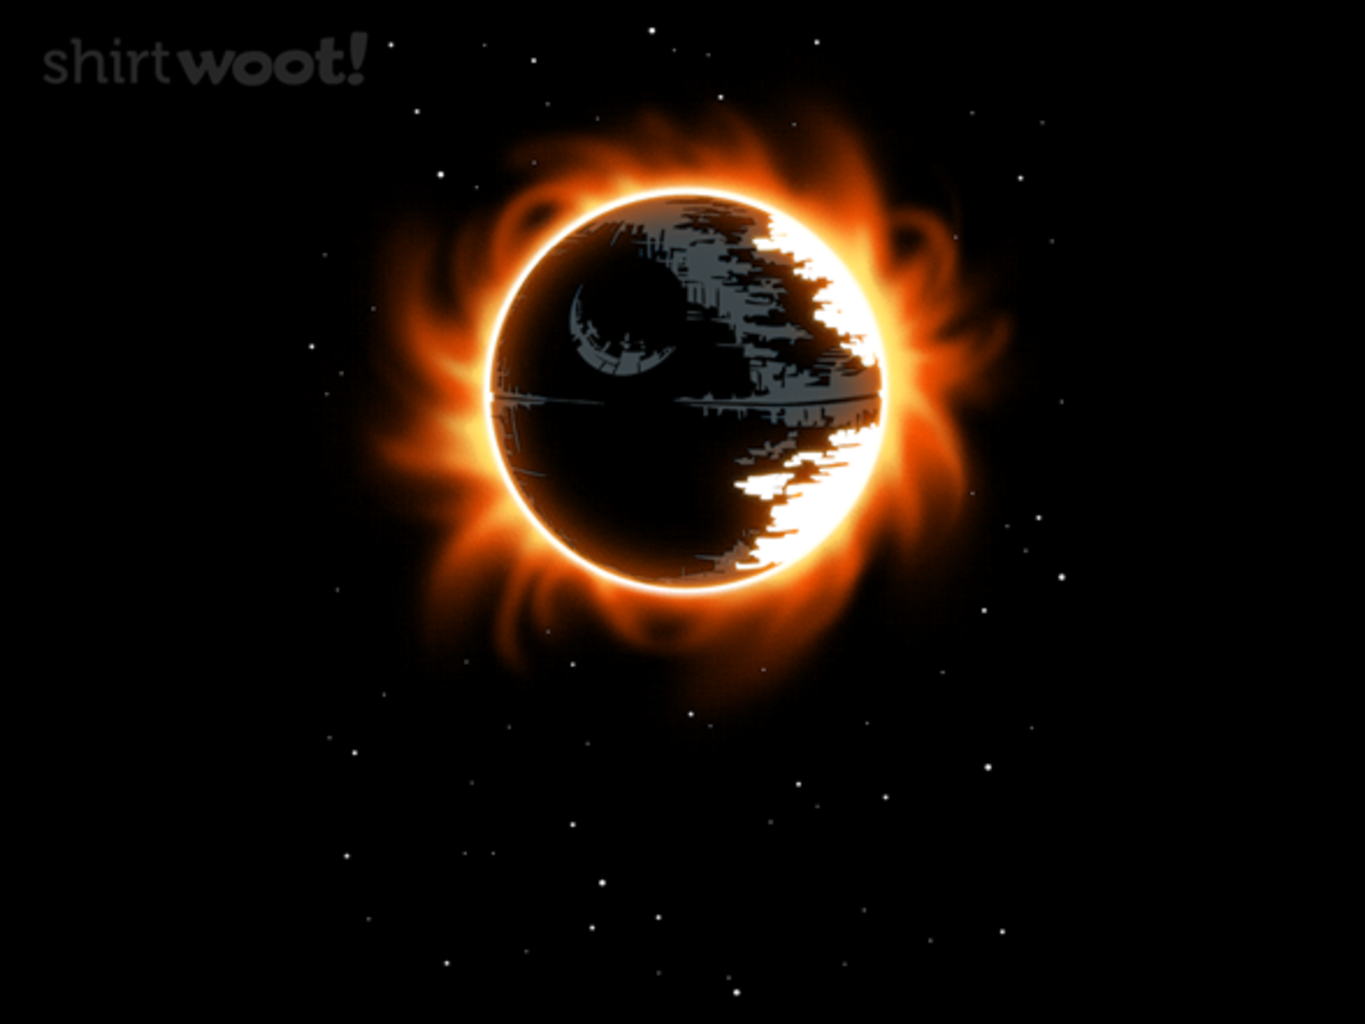 Woot!: The Last Eclipse